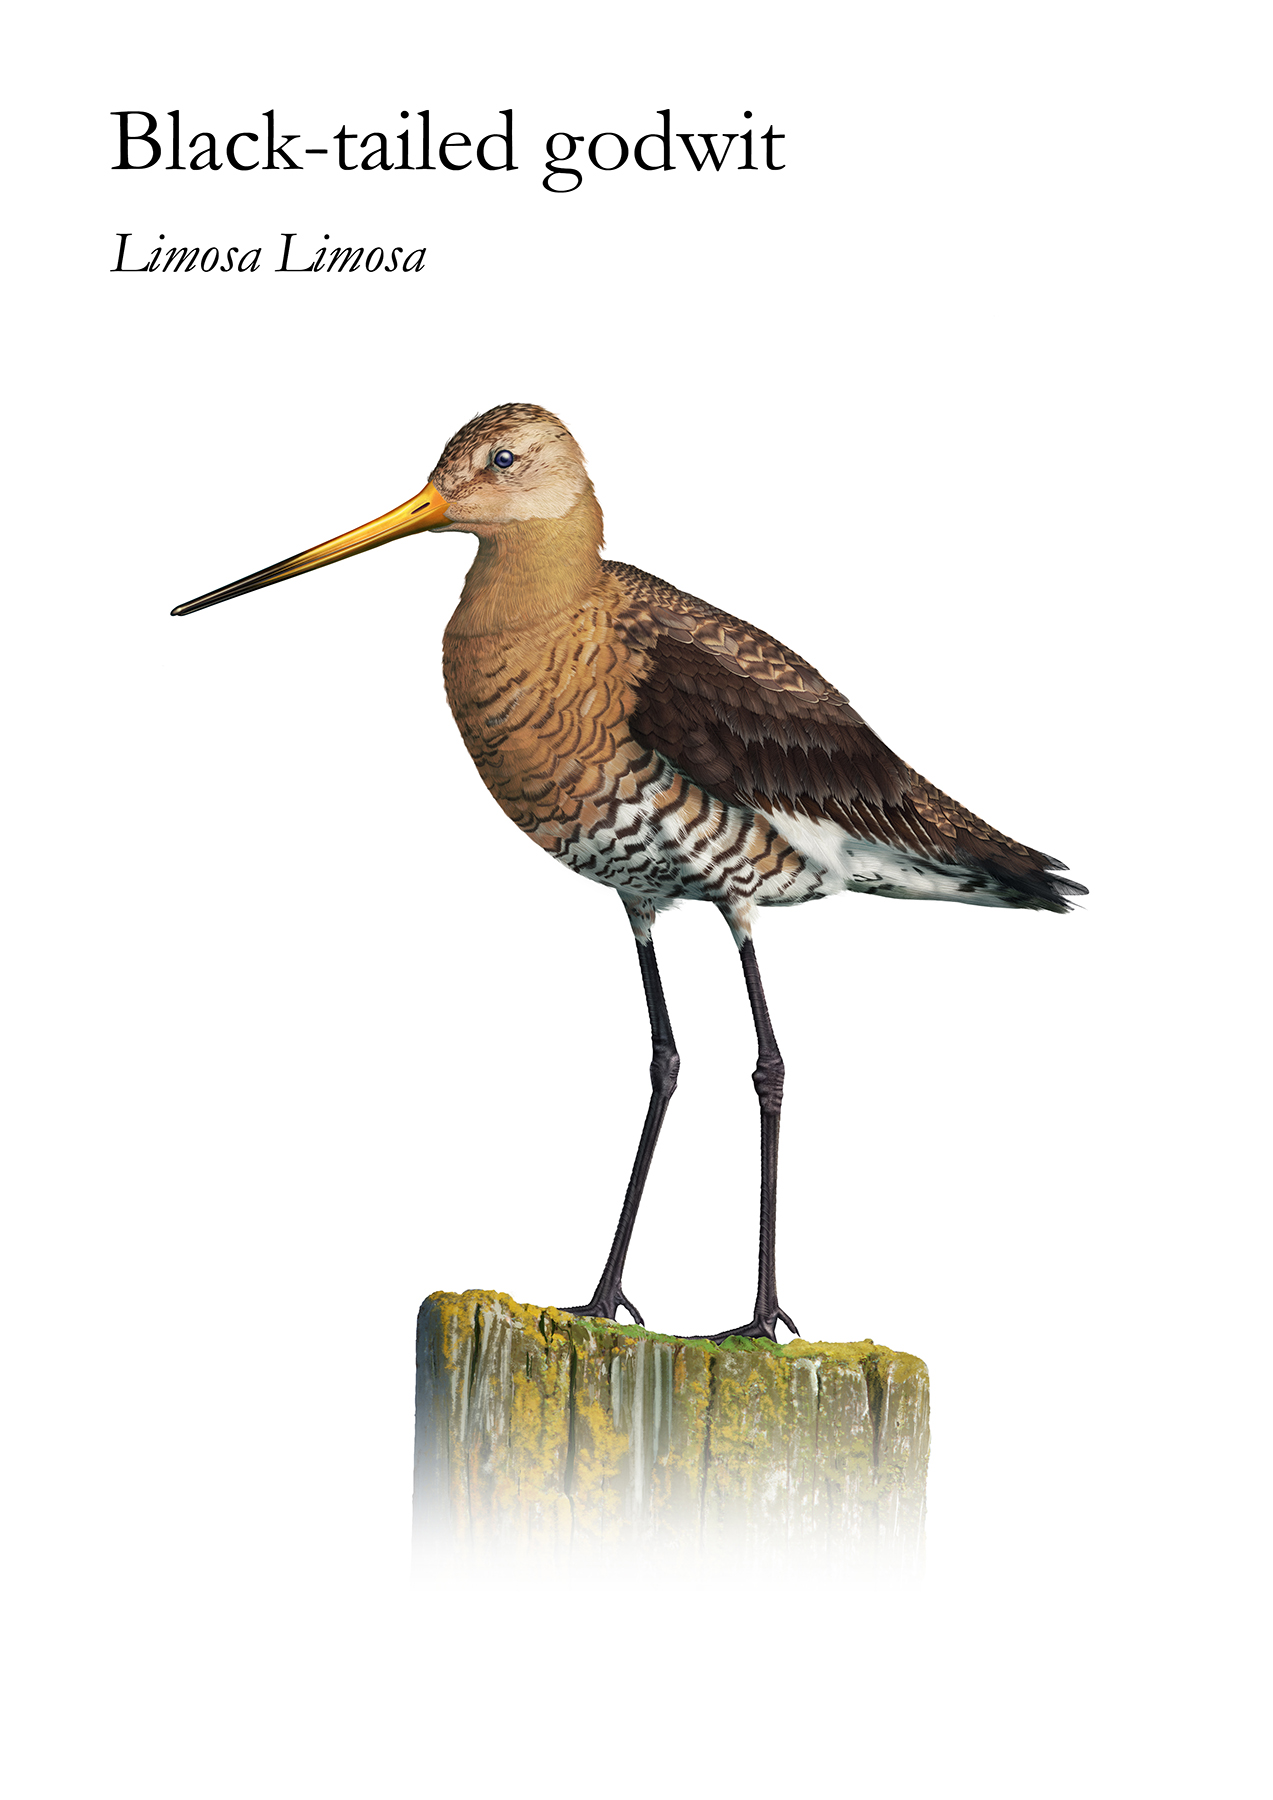 The Black Tailed Godwit is a bird living near the water and is a large long-legged long-billed shorebird